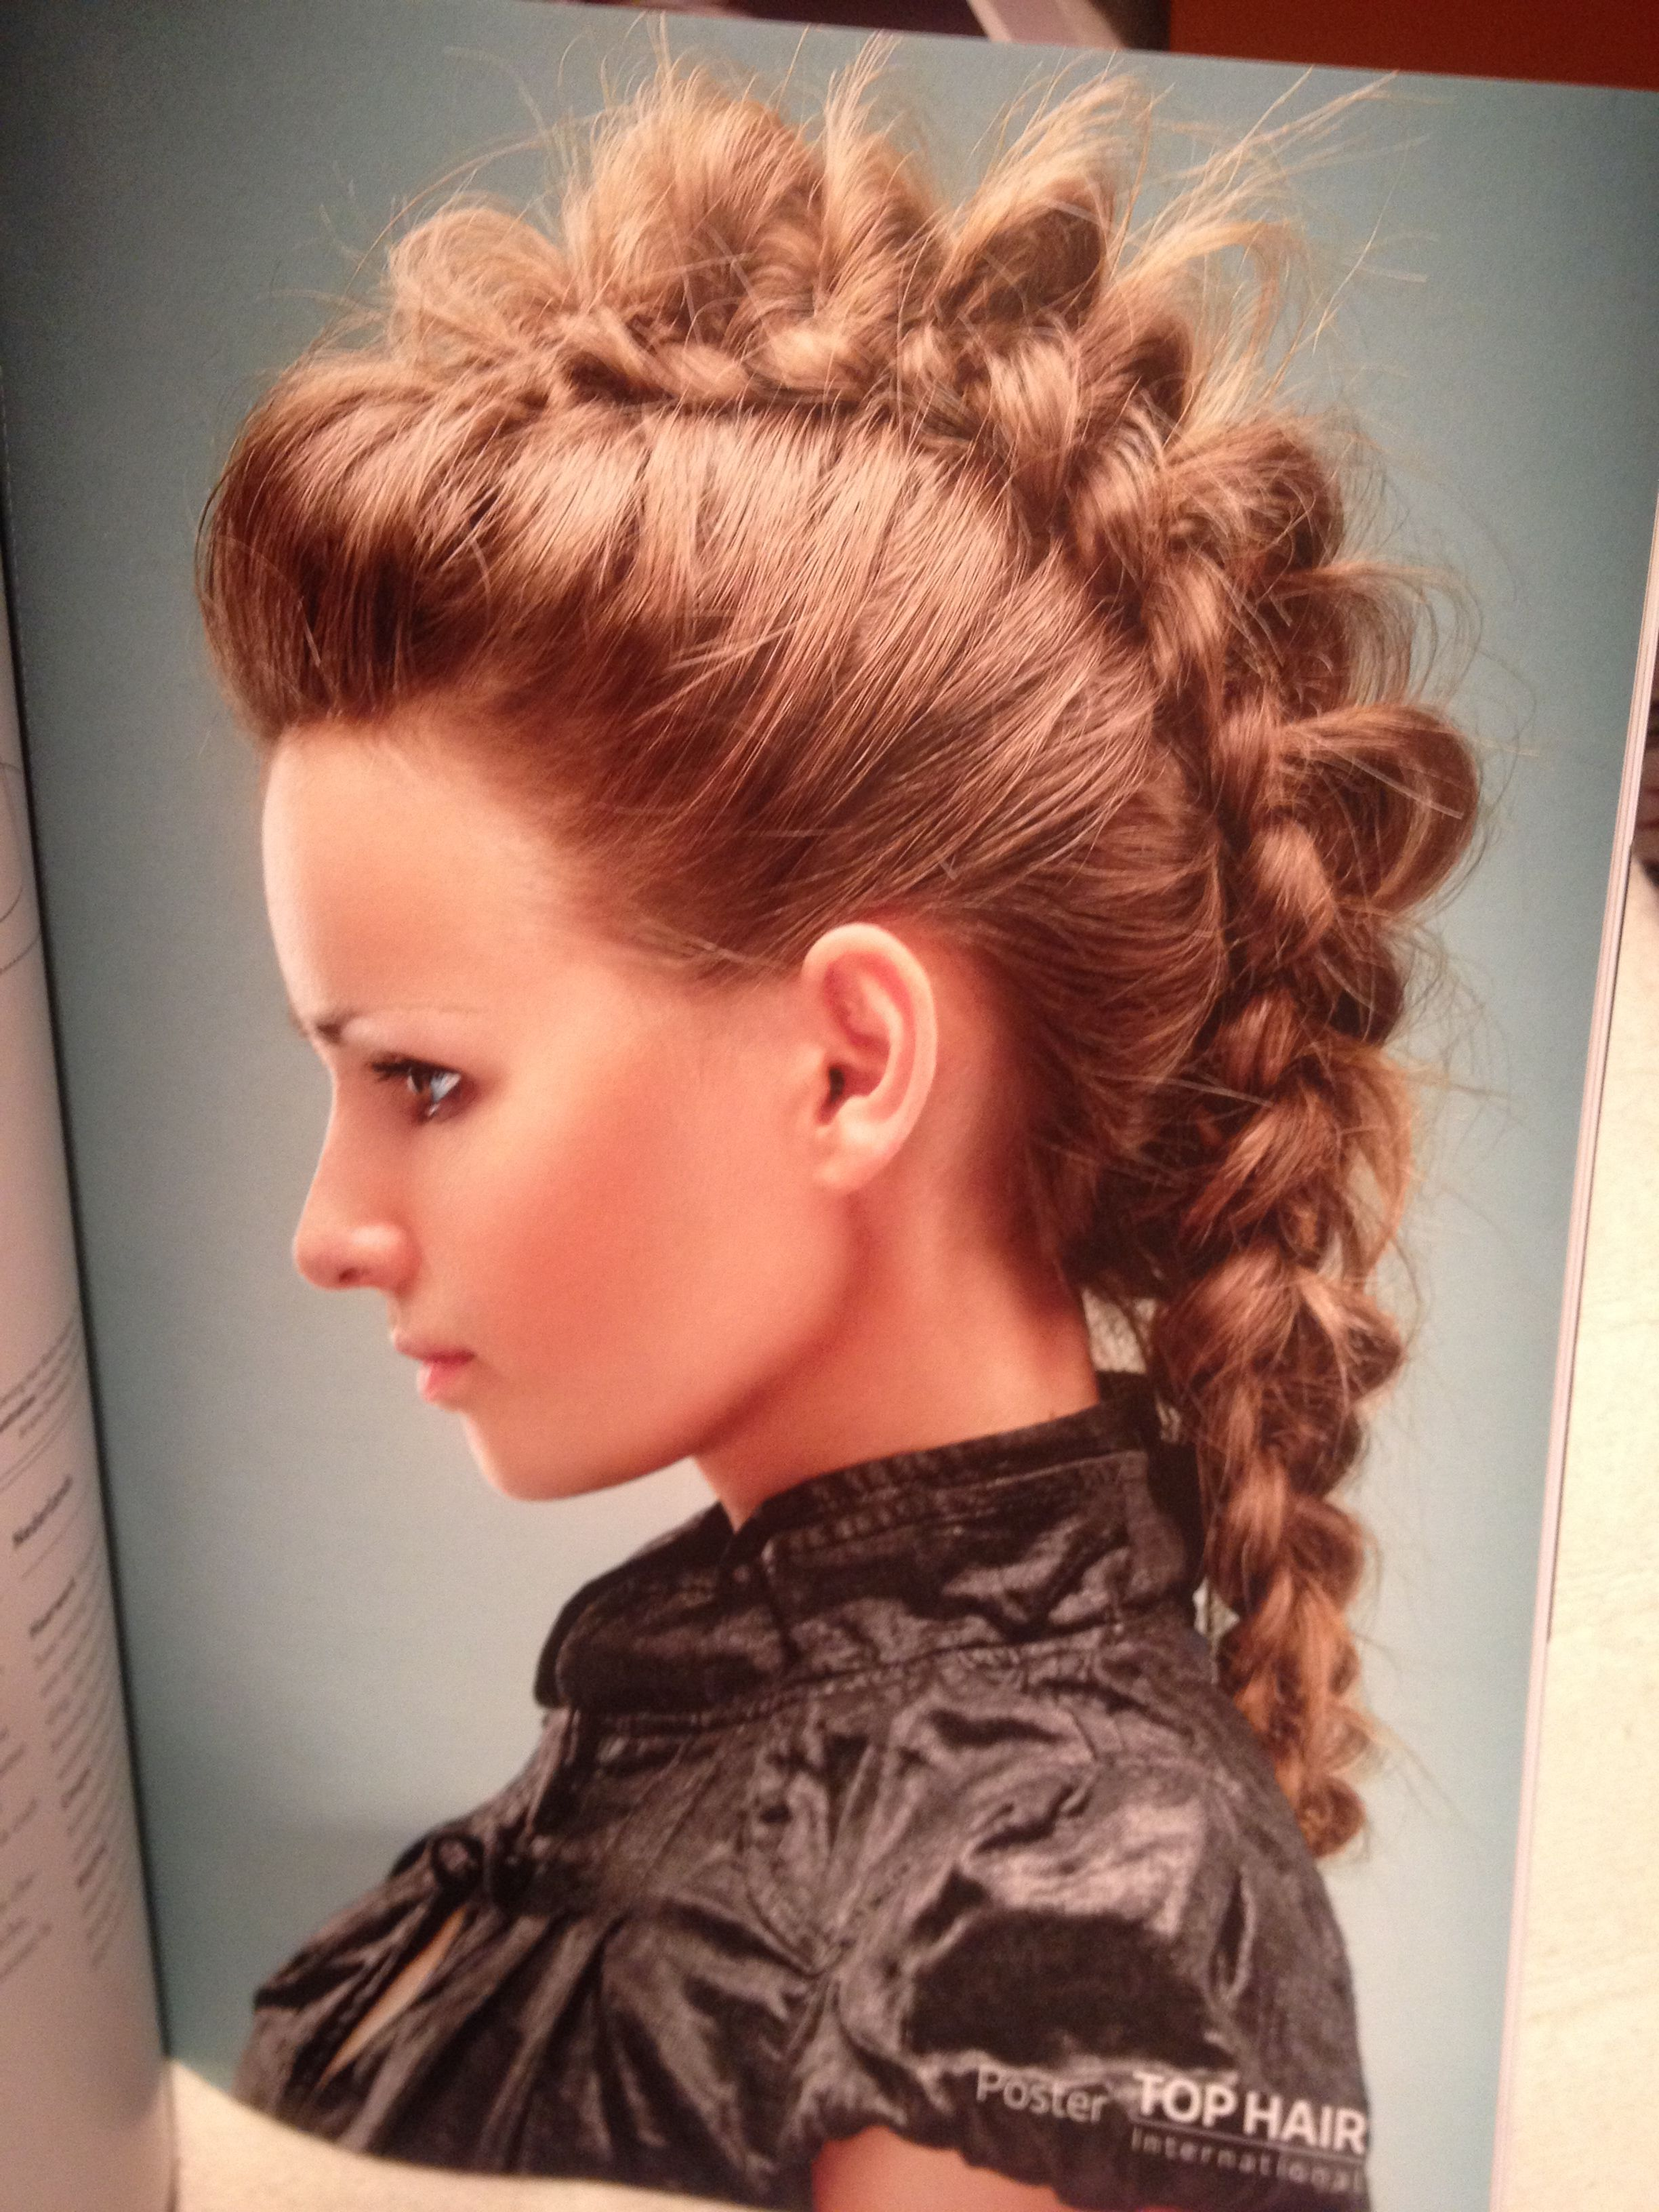 Pin by sandeep kaur on hairstyles pinterest hair inspiration and